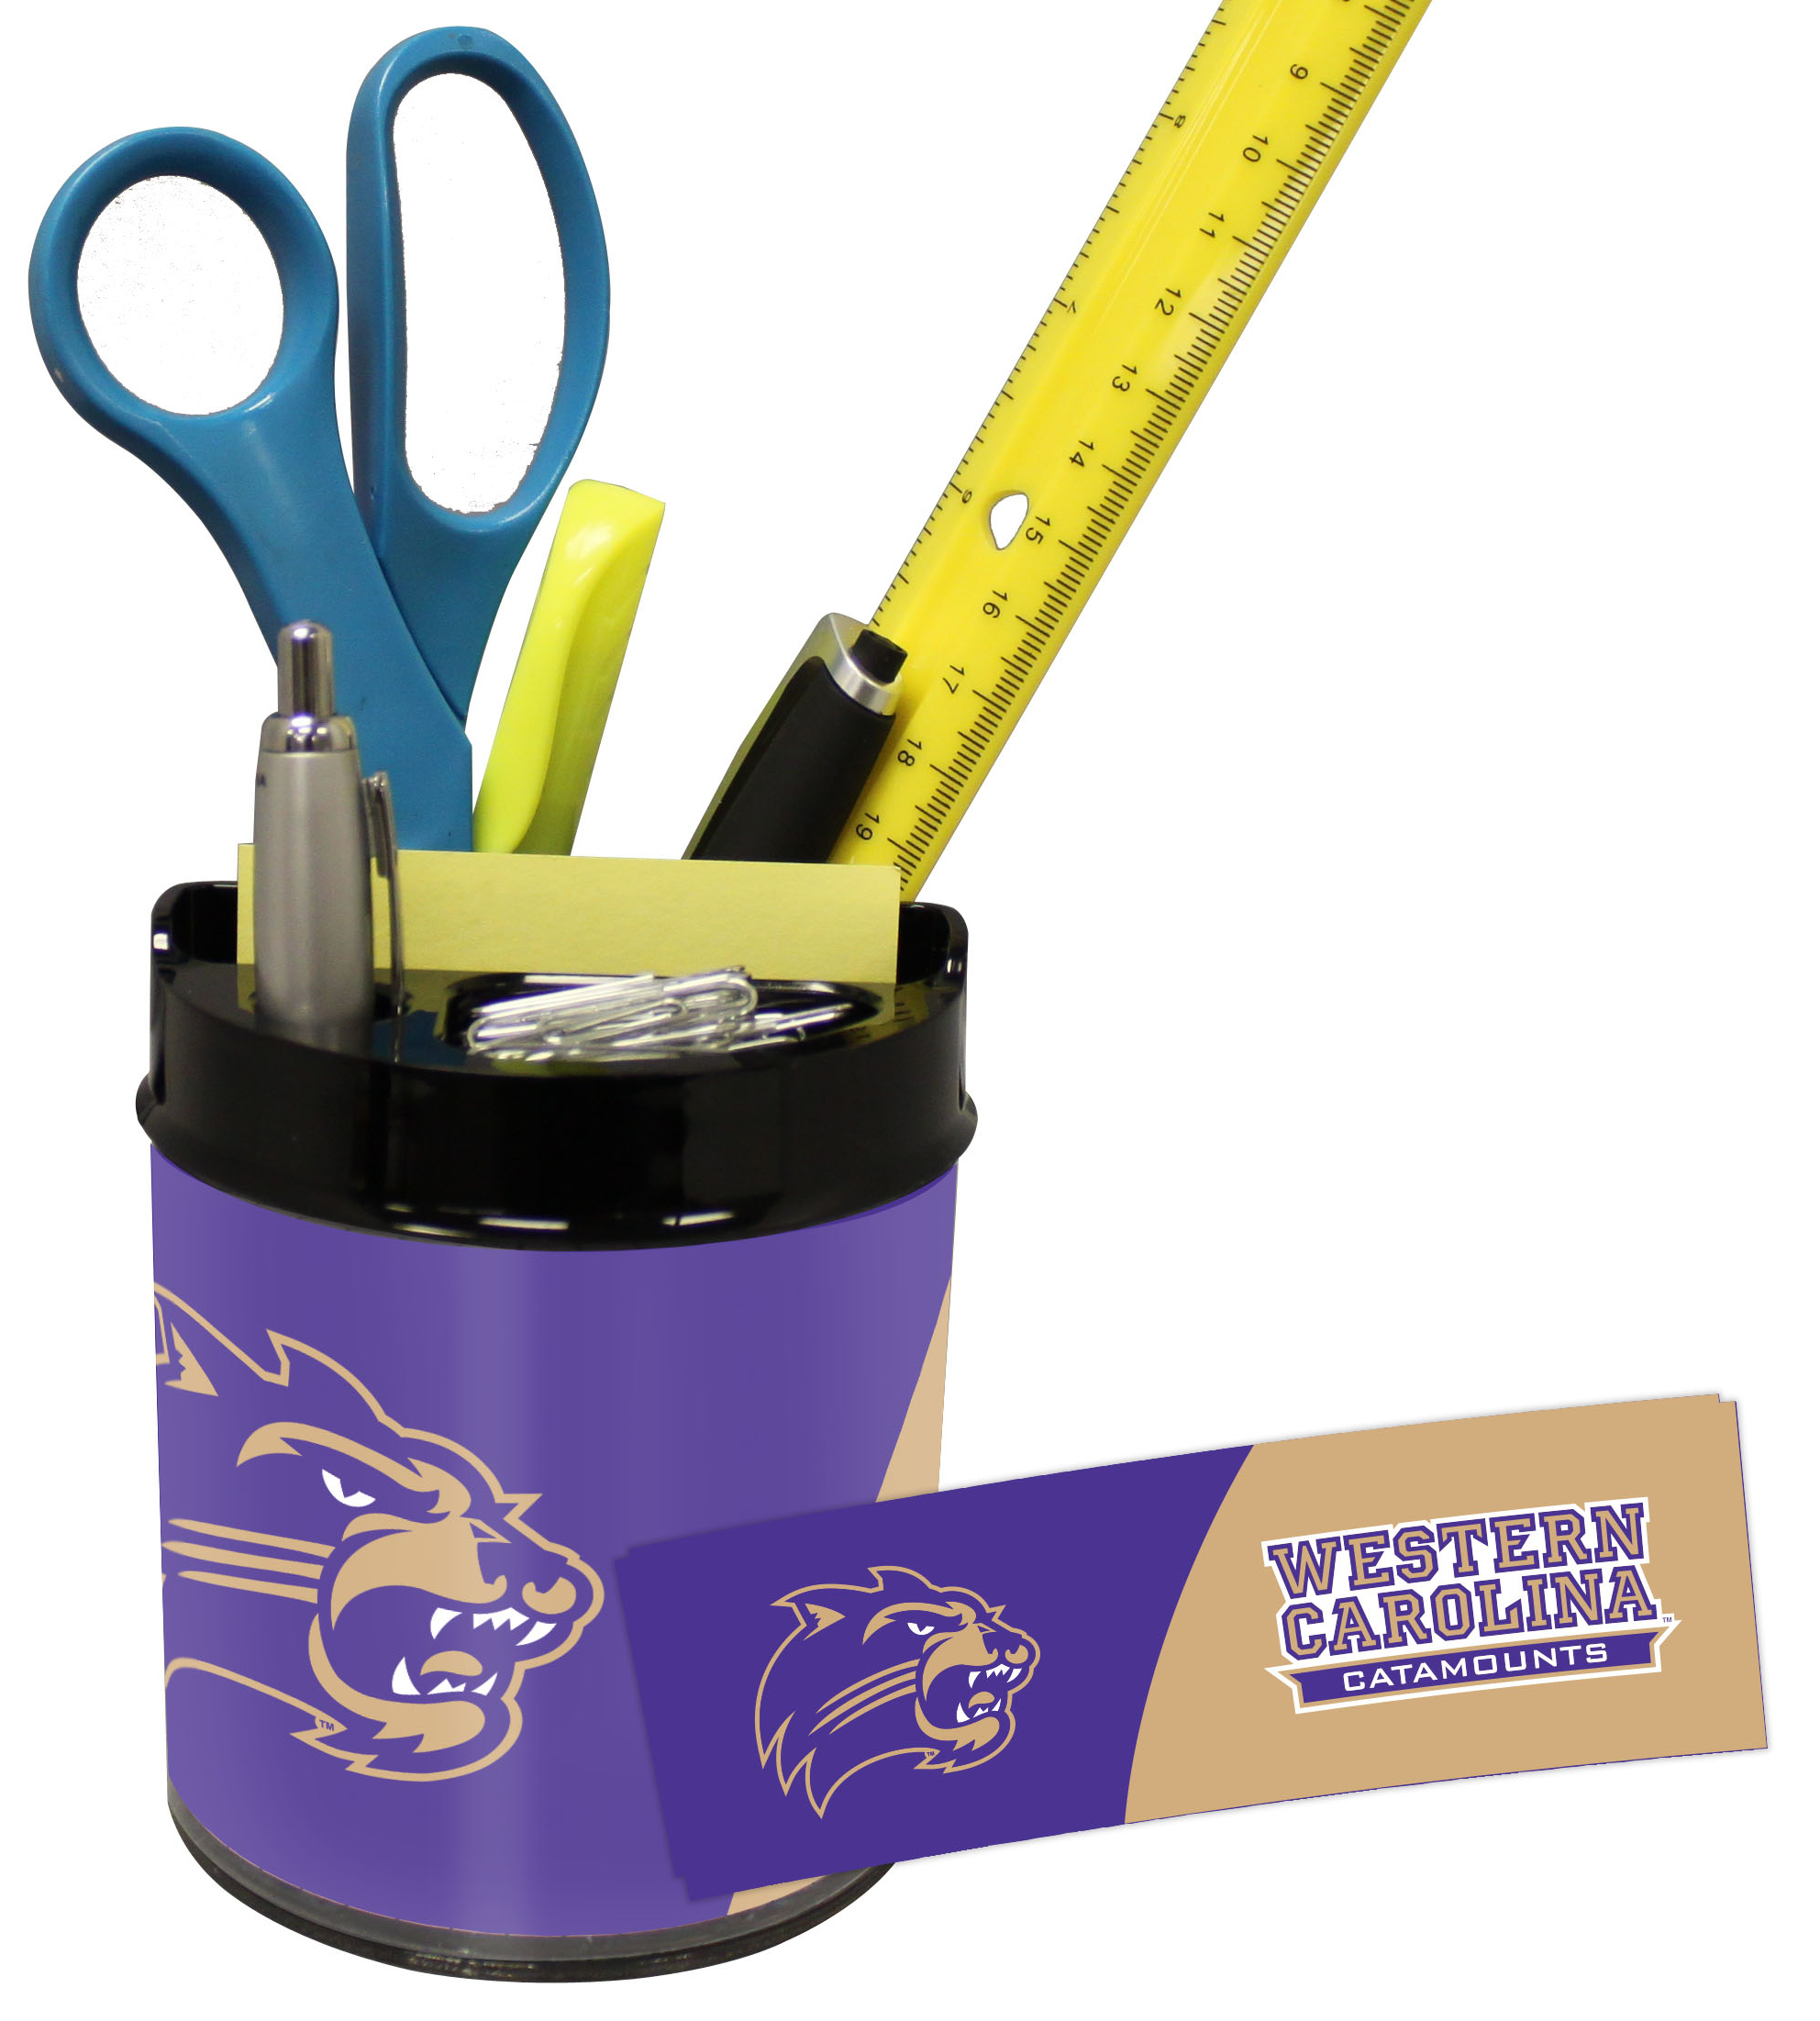 Western Carolina Catamounts Small Desk Caddy